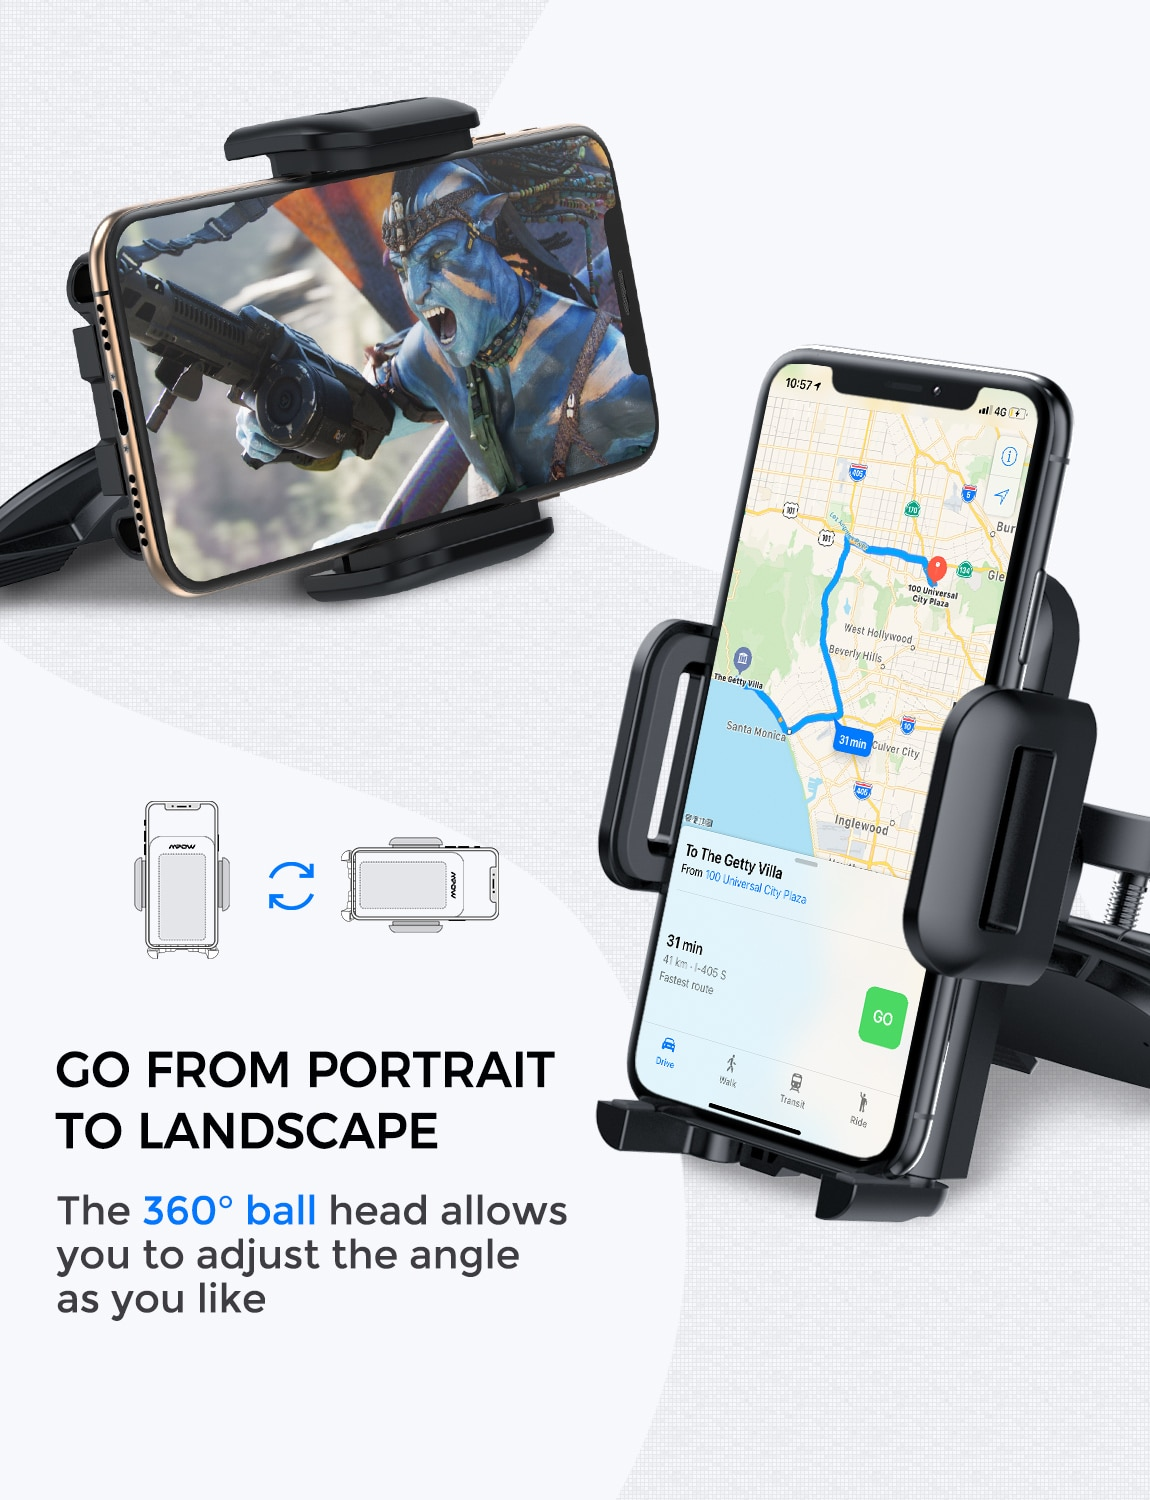 Hc2add57eff2f4248b74cfa3d0940183bC - Mpow MCM3 CD Slot Car Phone Holder Car Mount Holder Stand 360 Rotation Mobile Phone Holder Stand for iphone 12 XS Samsung Huawei